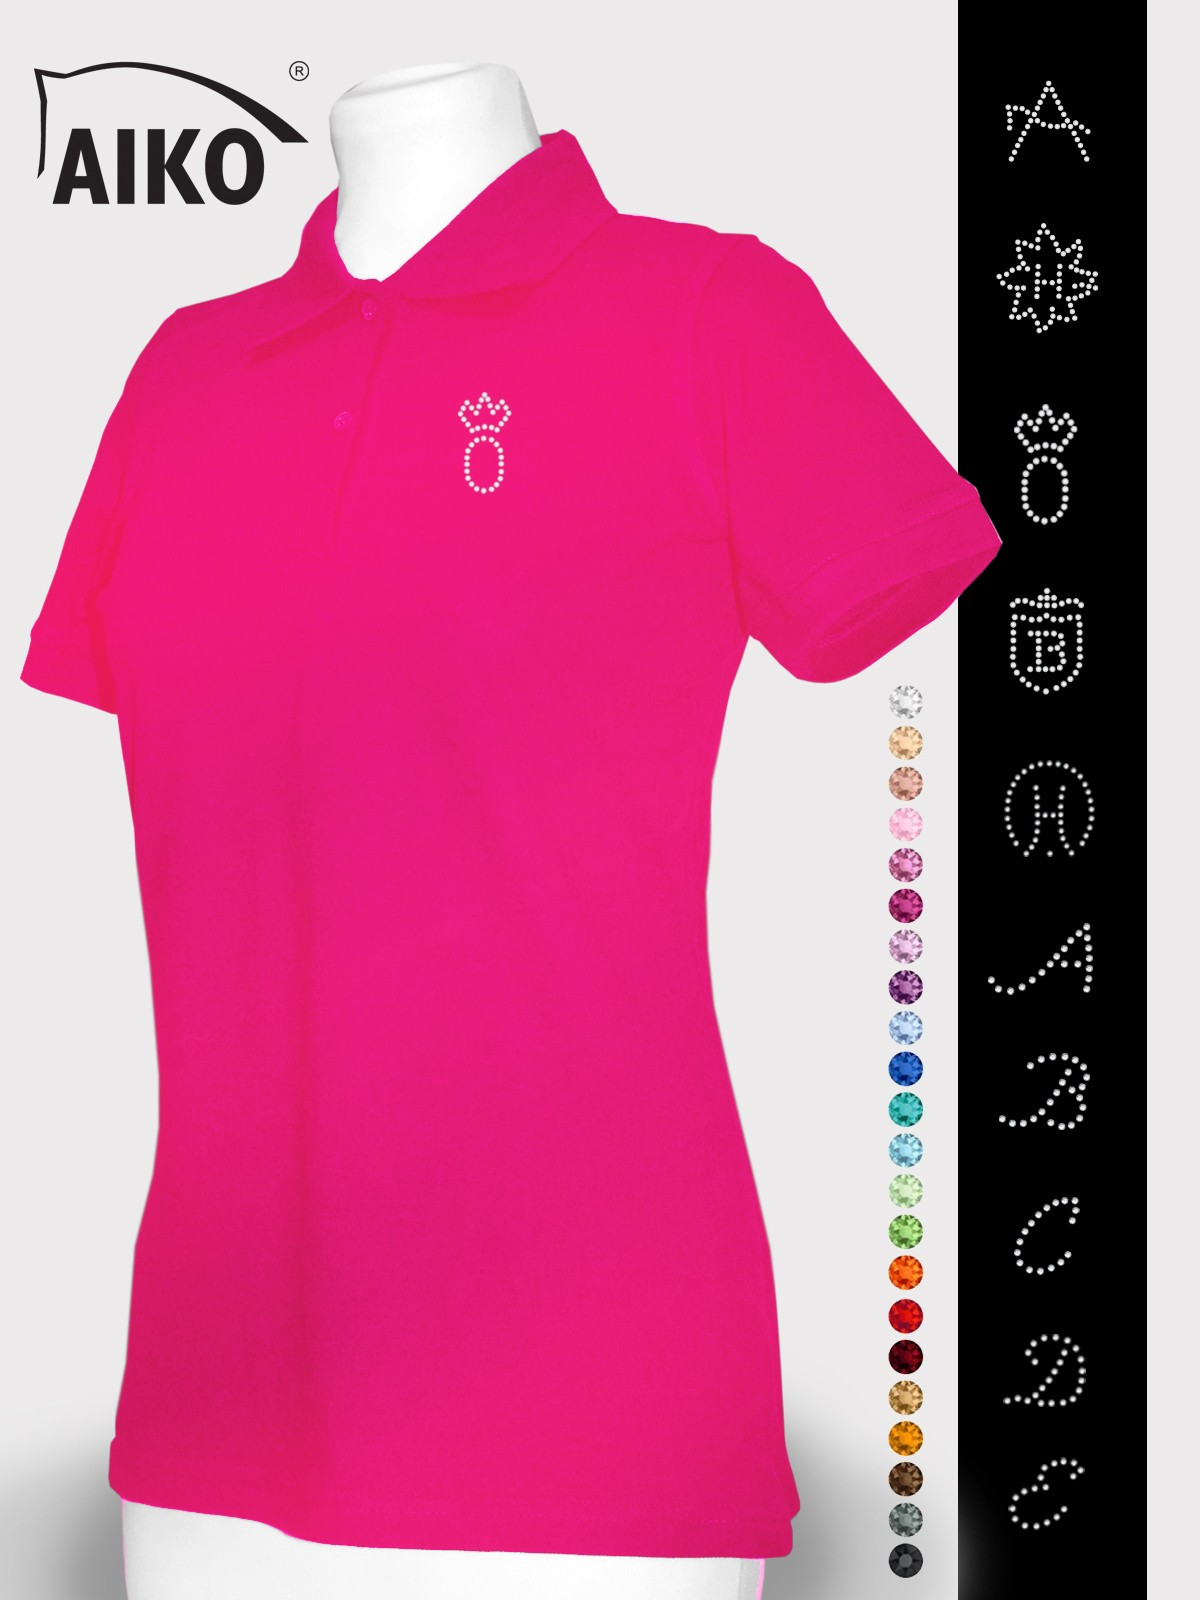 AIKO® - Individual Polo - Color Crystal